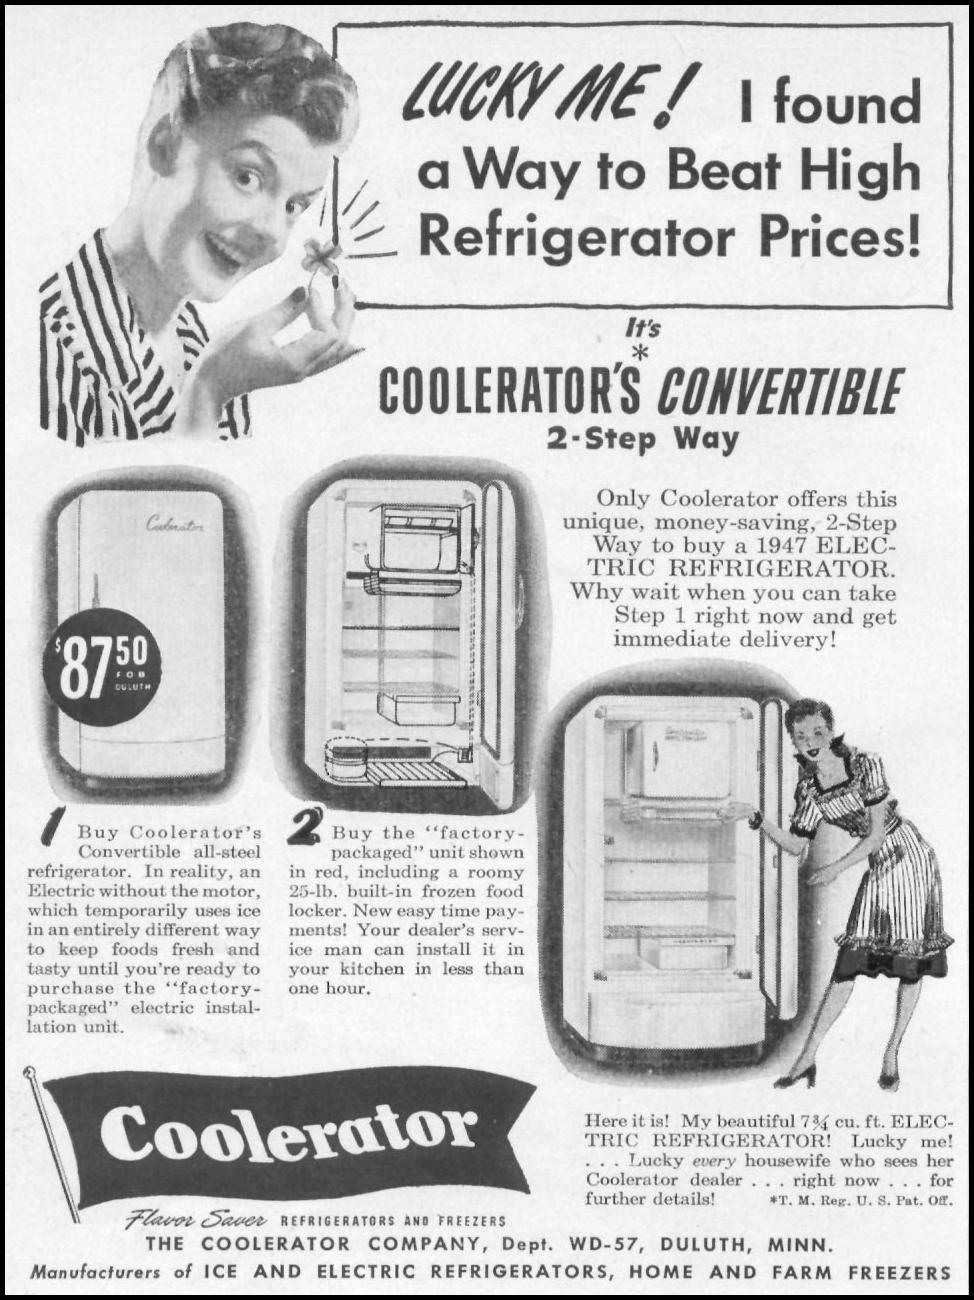 COOLERATOR CONVERTIBLE REFRIGERATOR-FREEZER WOMAN'S DAY 05/01/1947 p. 74